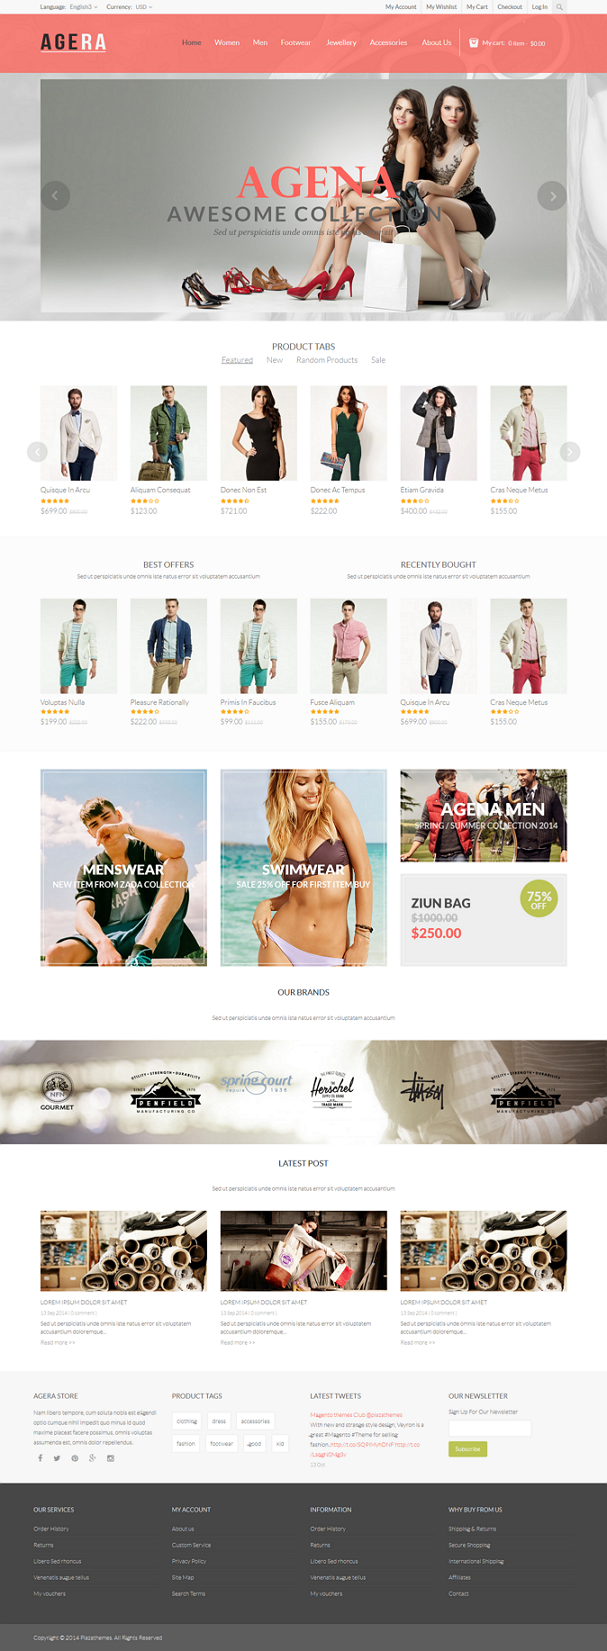 Agera is a Magento ready theme suitable for every type of store : fashion store, clothing store, ...